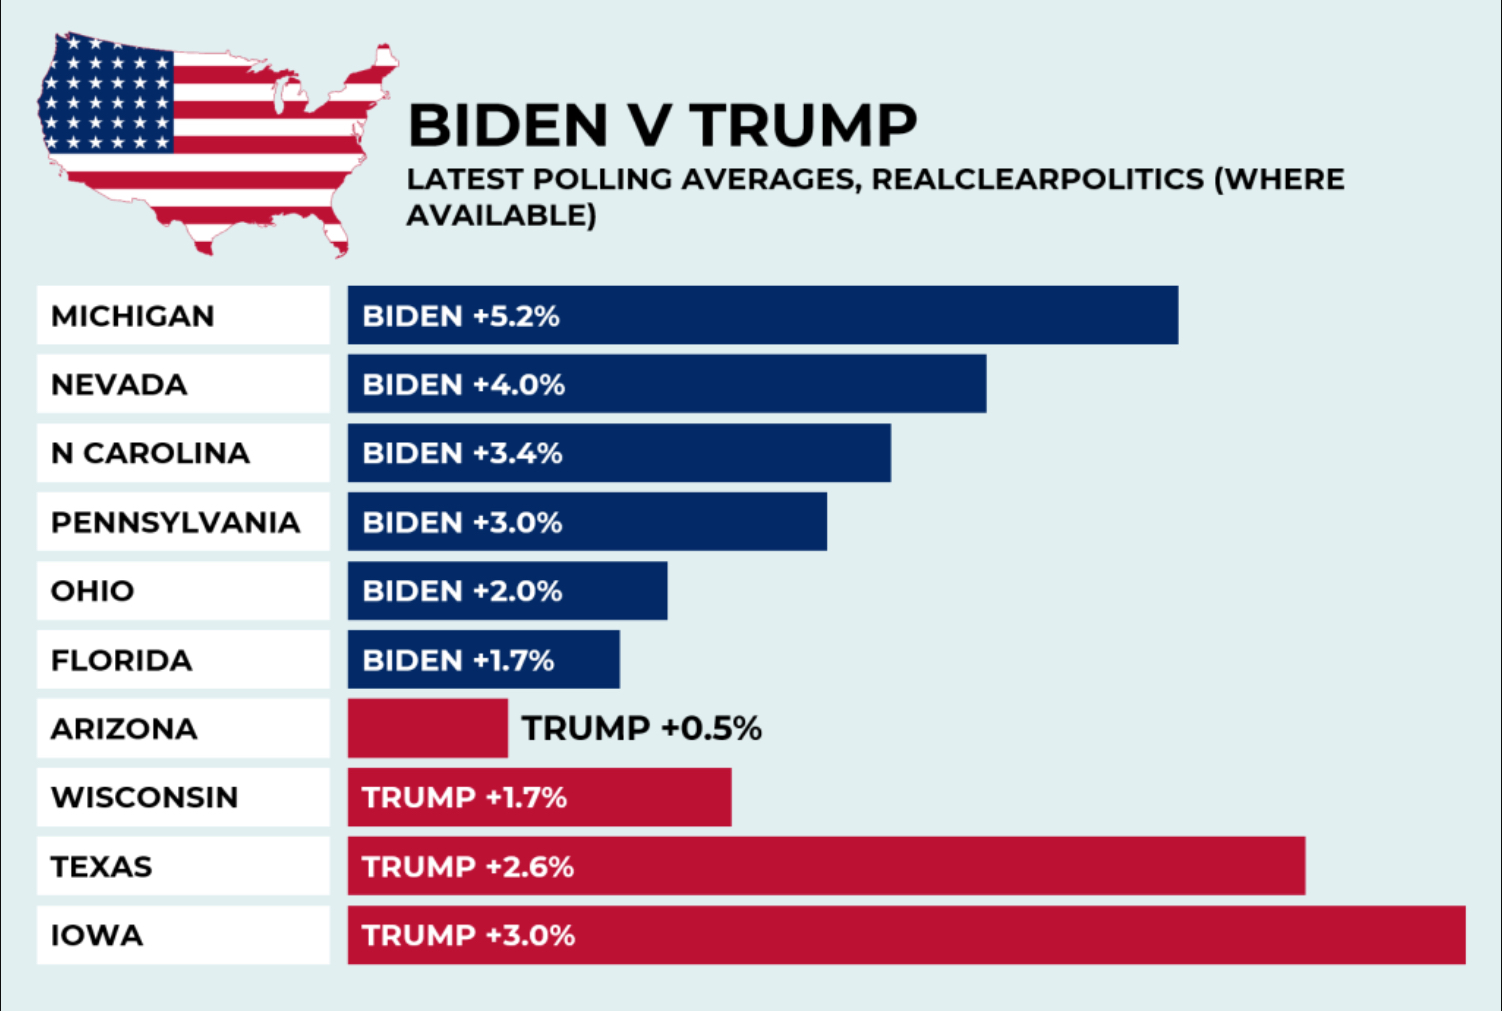 Graphic showing early polling results for Trump and Biden in key states